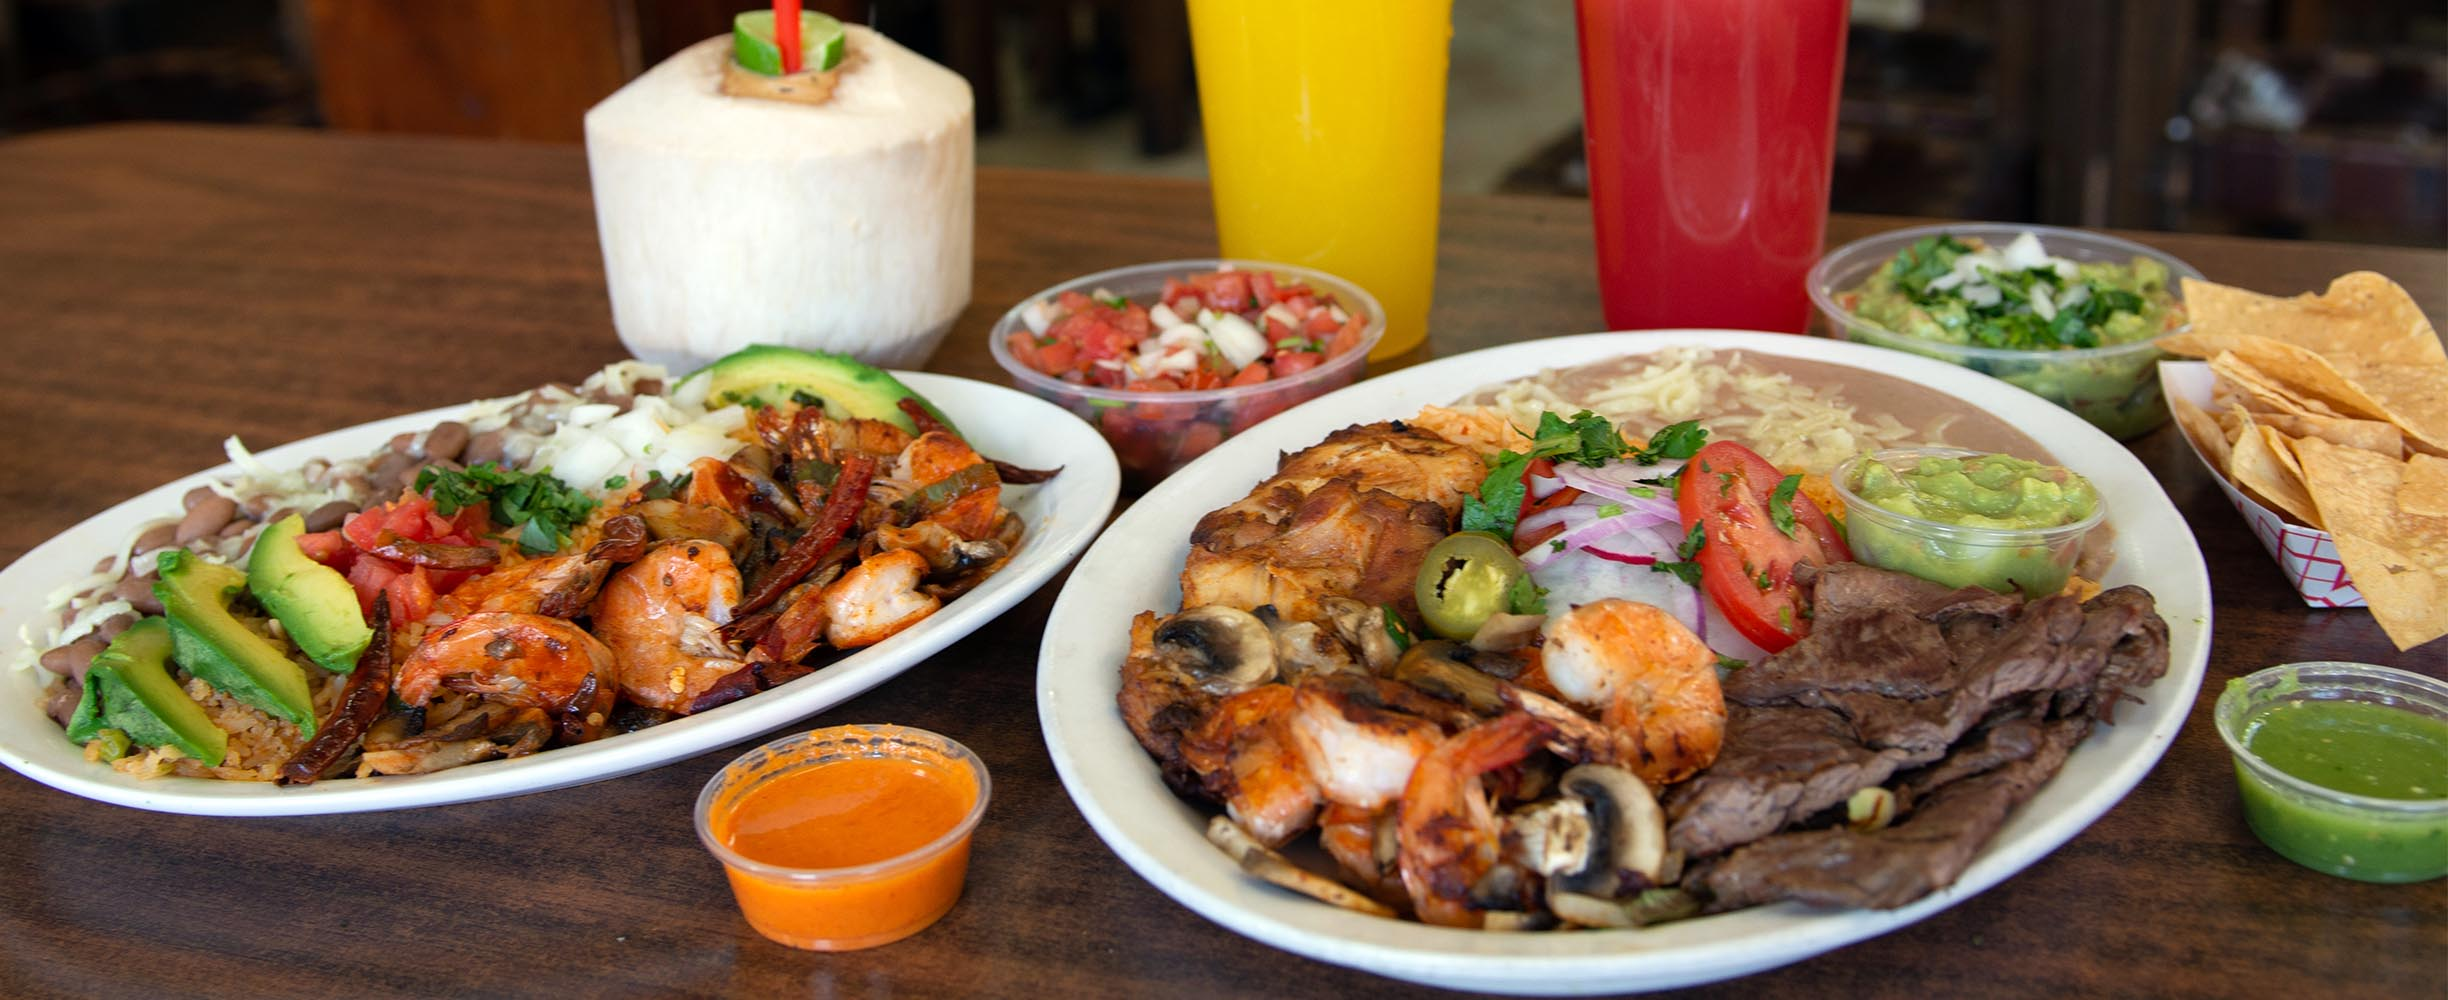 Mexican restaurant in San francisco with a variety of platters including meat, shrimp, beans, carnitas and almost any combination of mexican food.